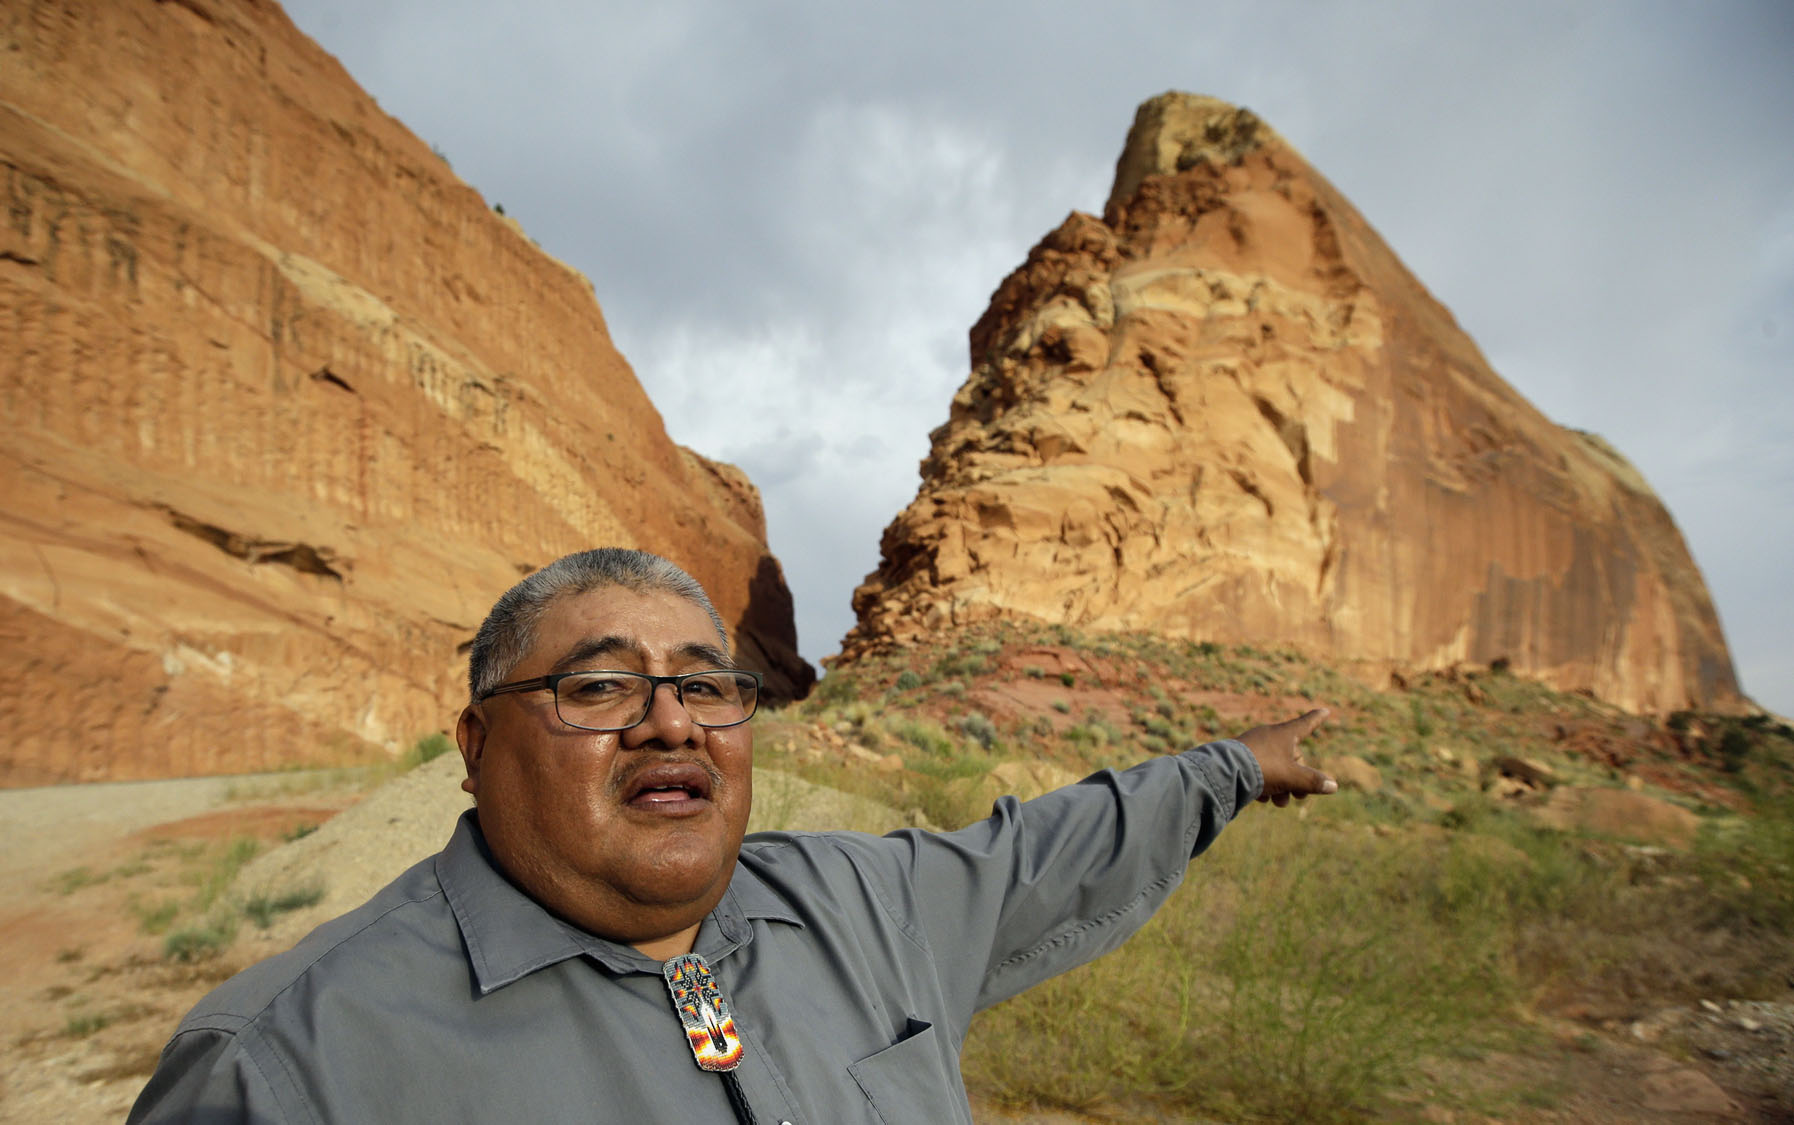 American Indians, environmentalists call to preserve sacred land in Utah